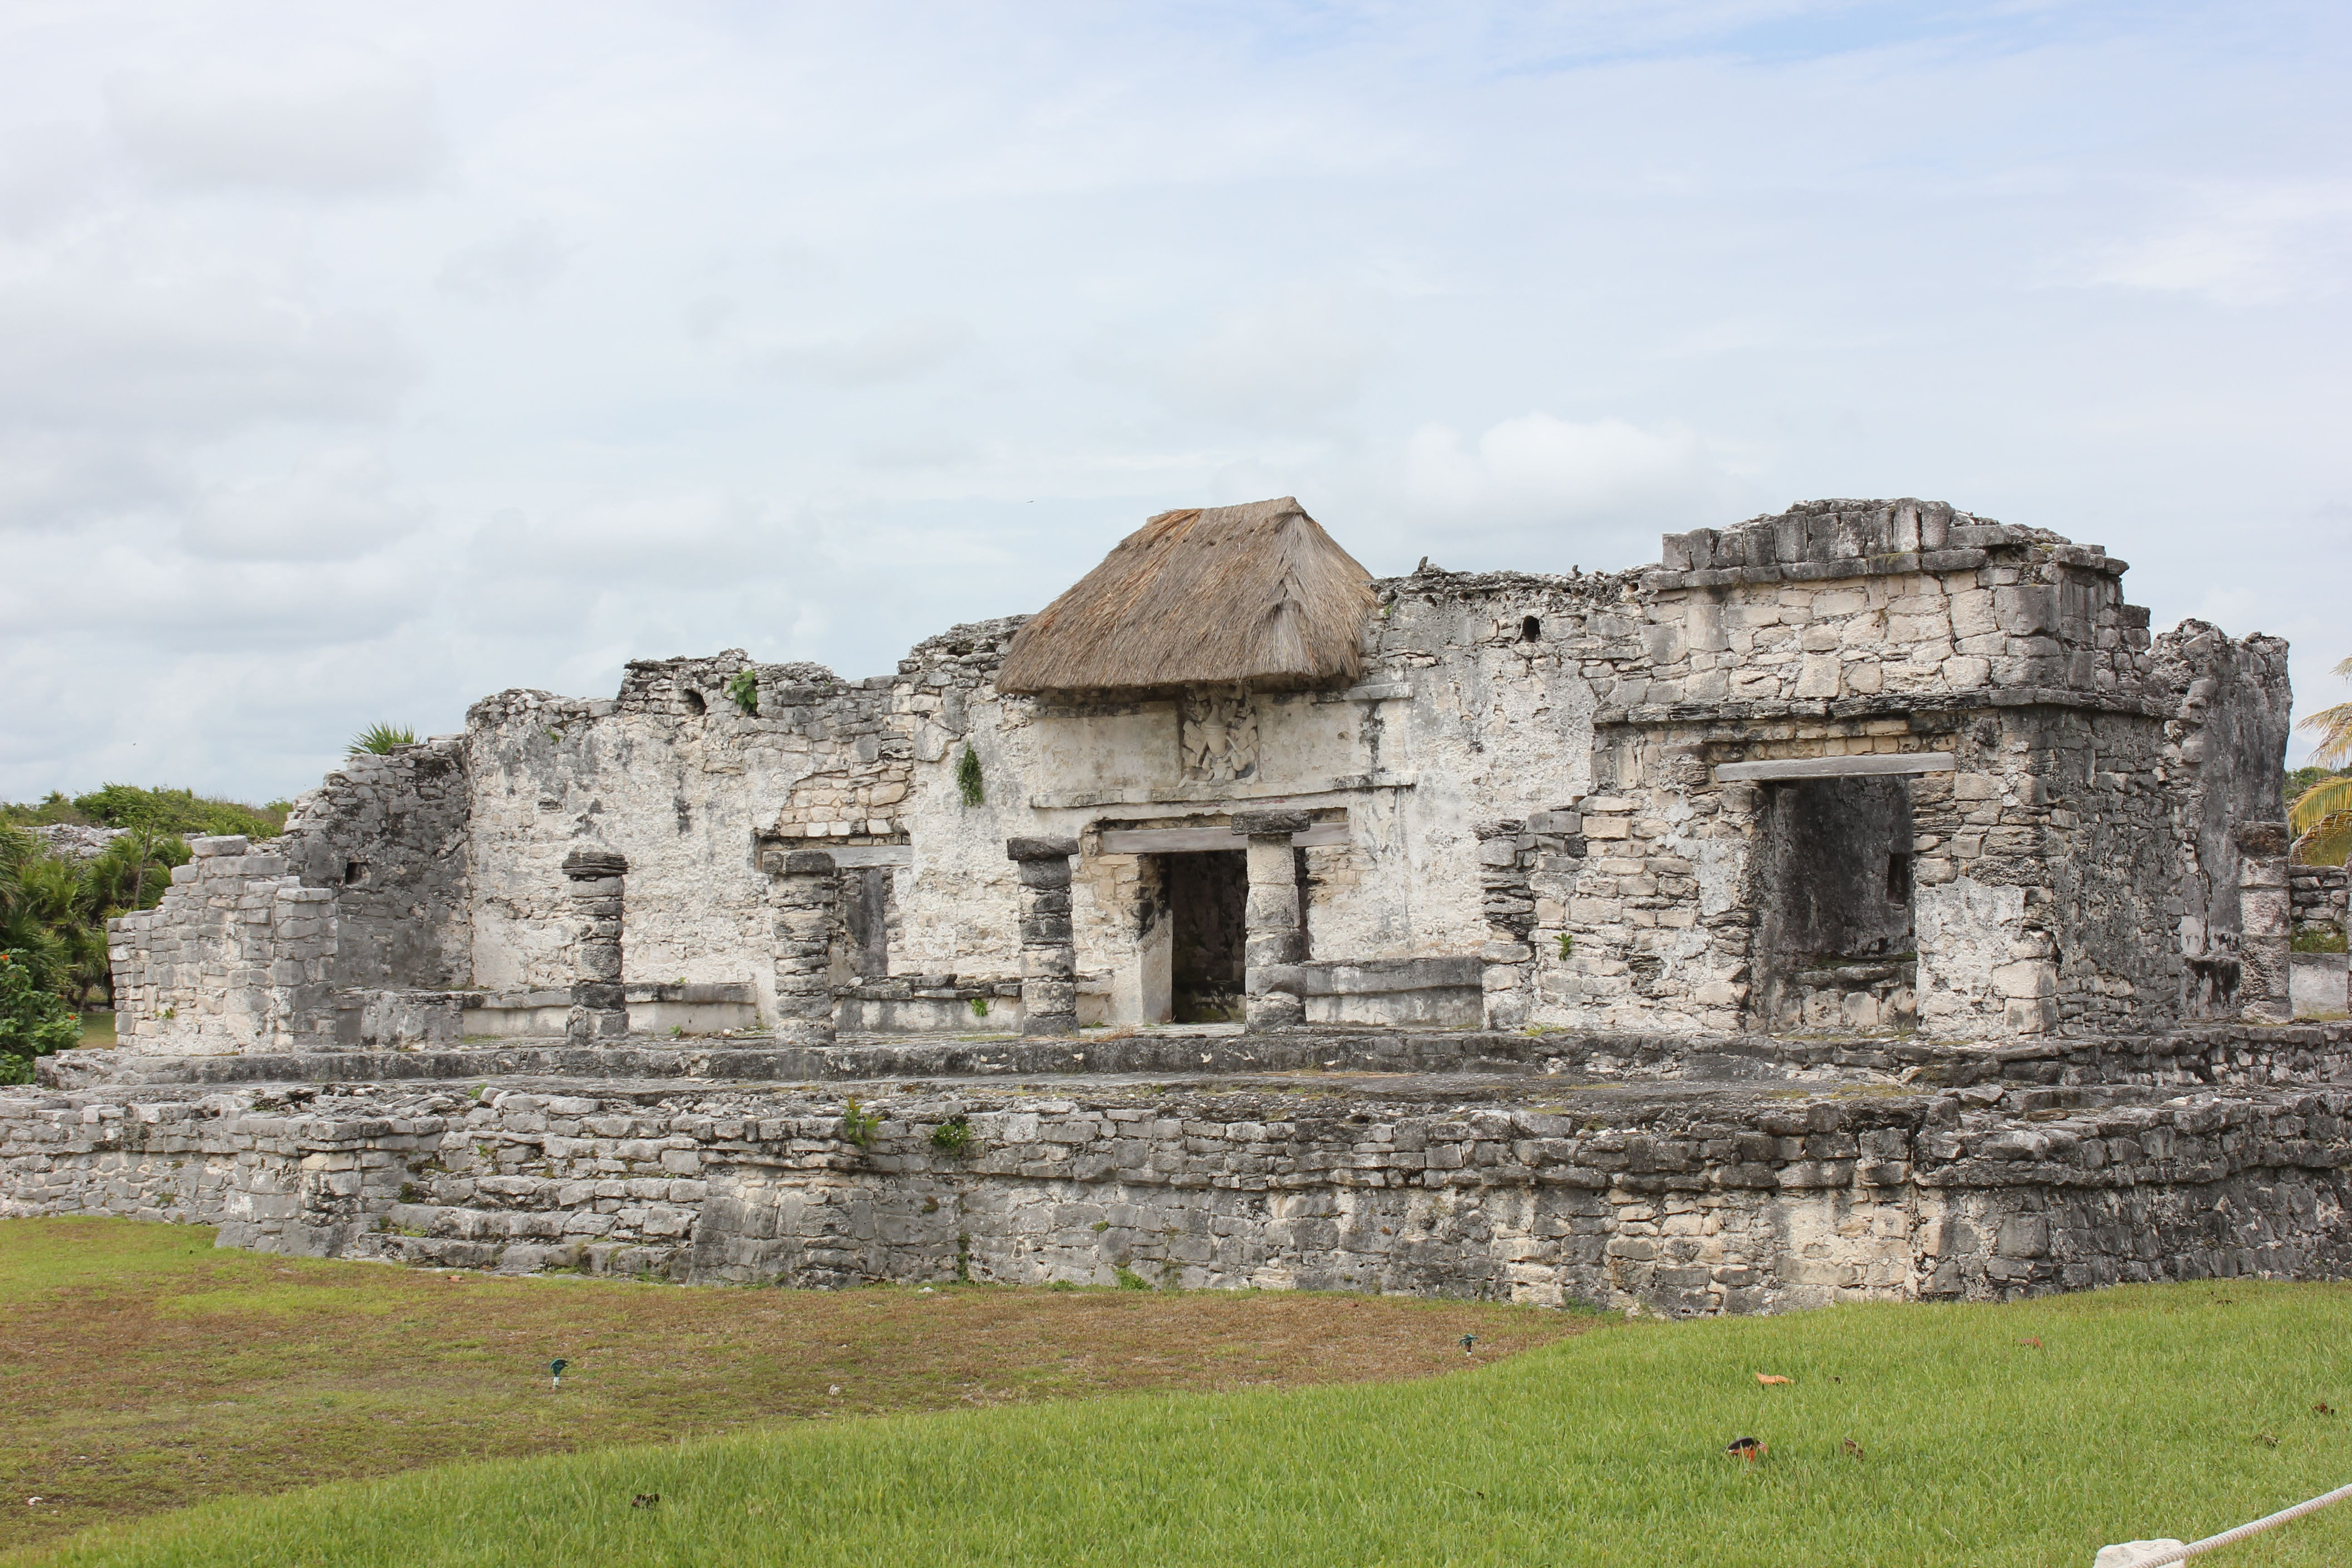 The mayan ruins of tulum almost thirty something